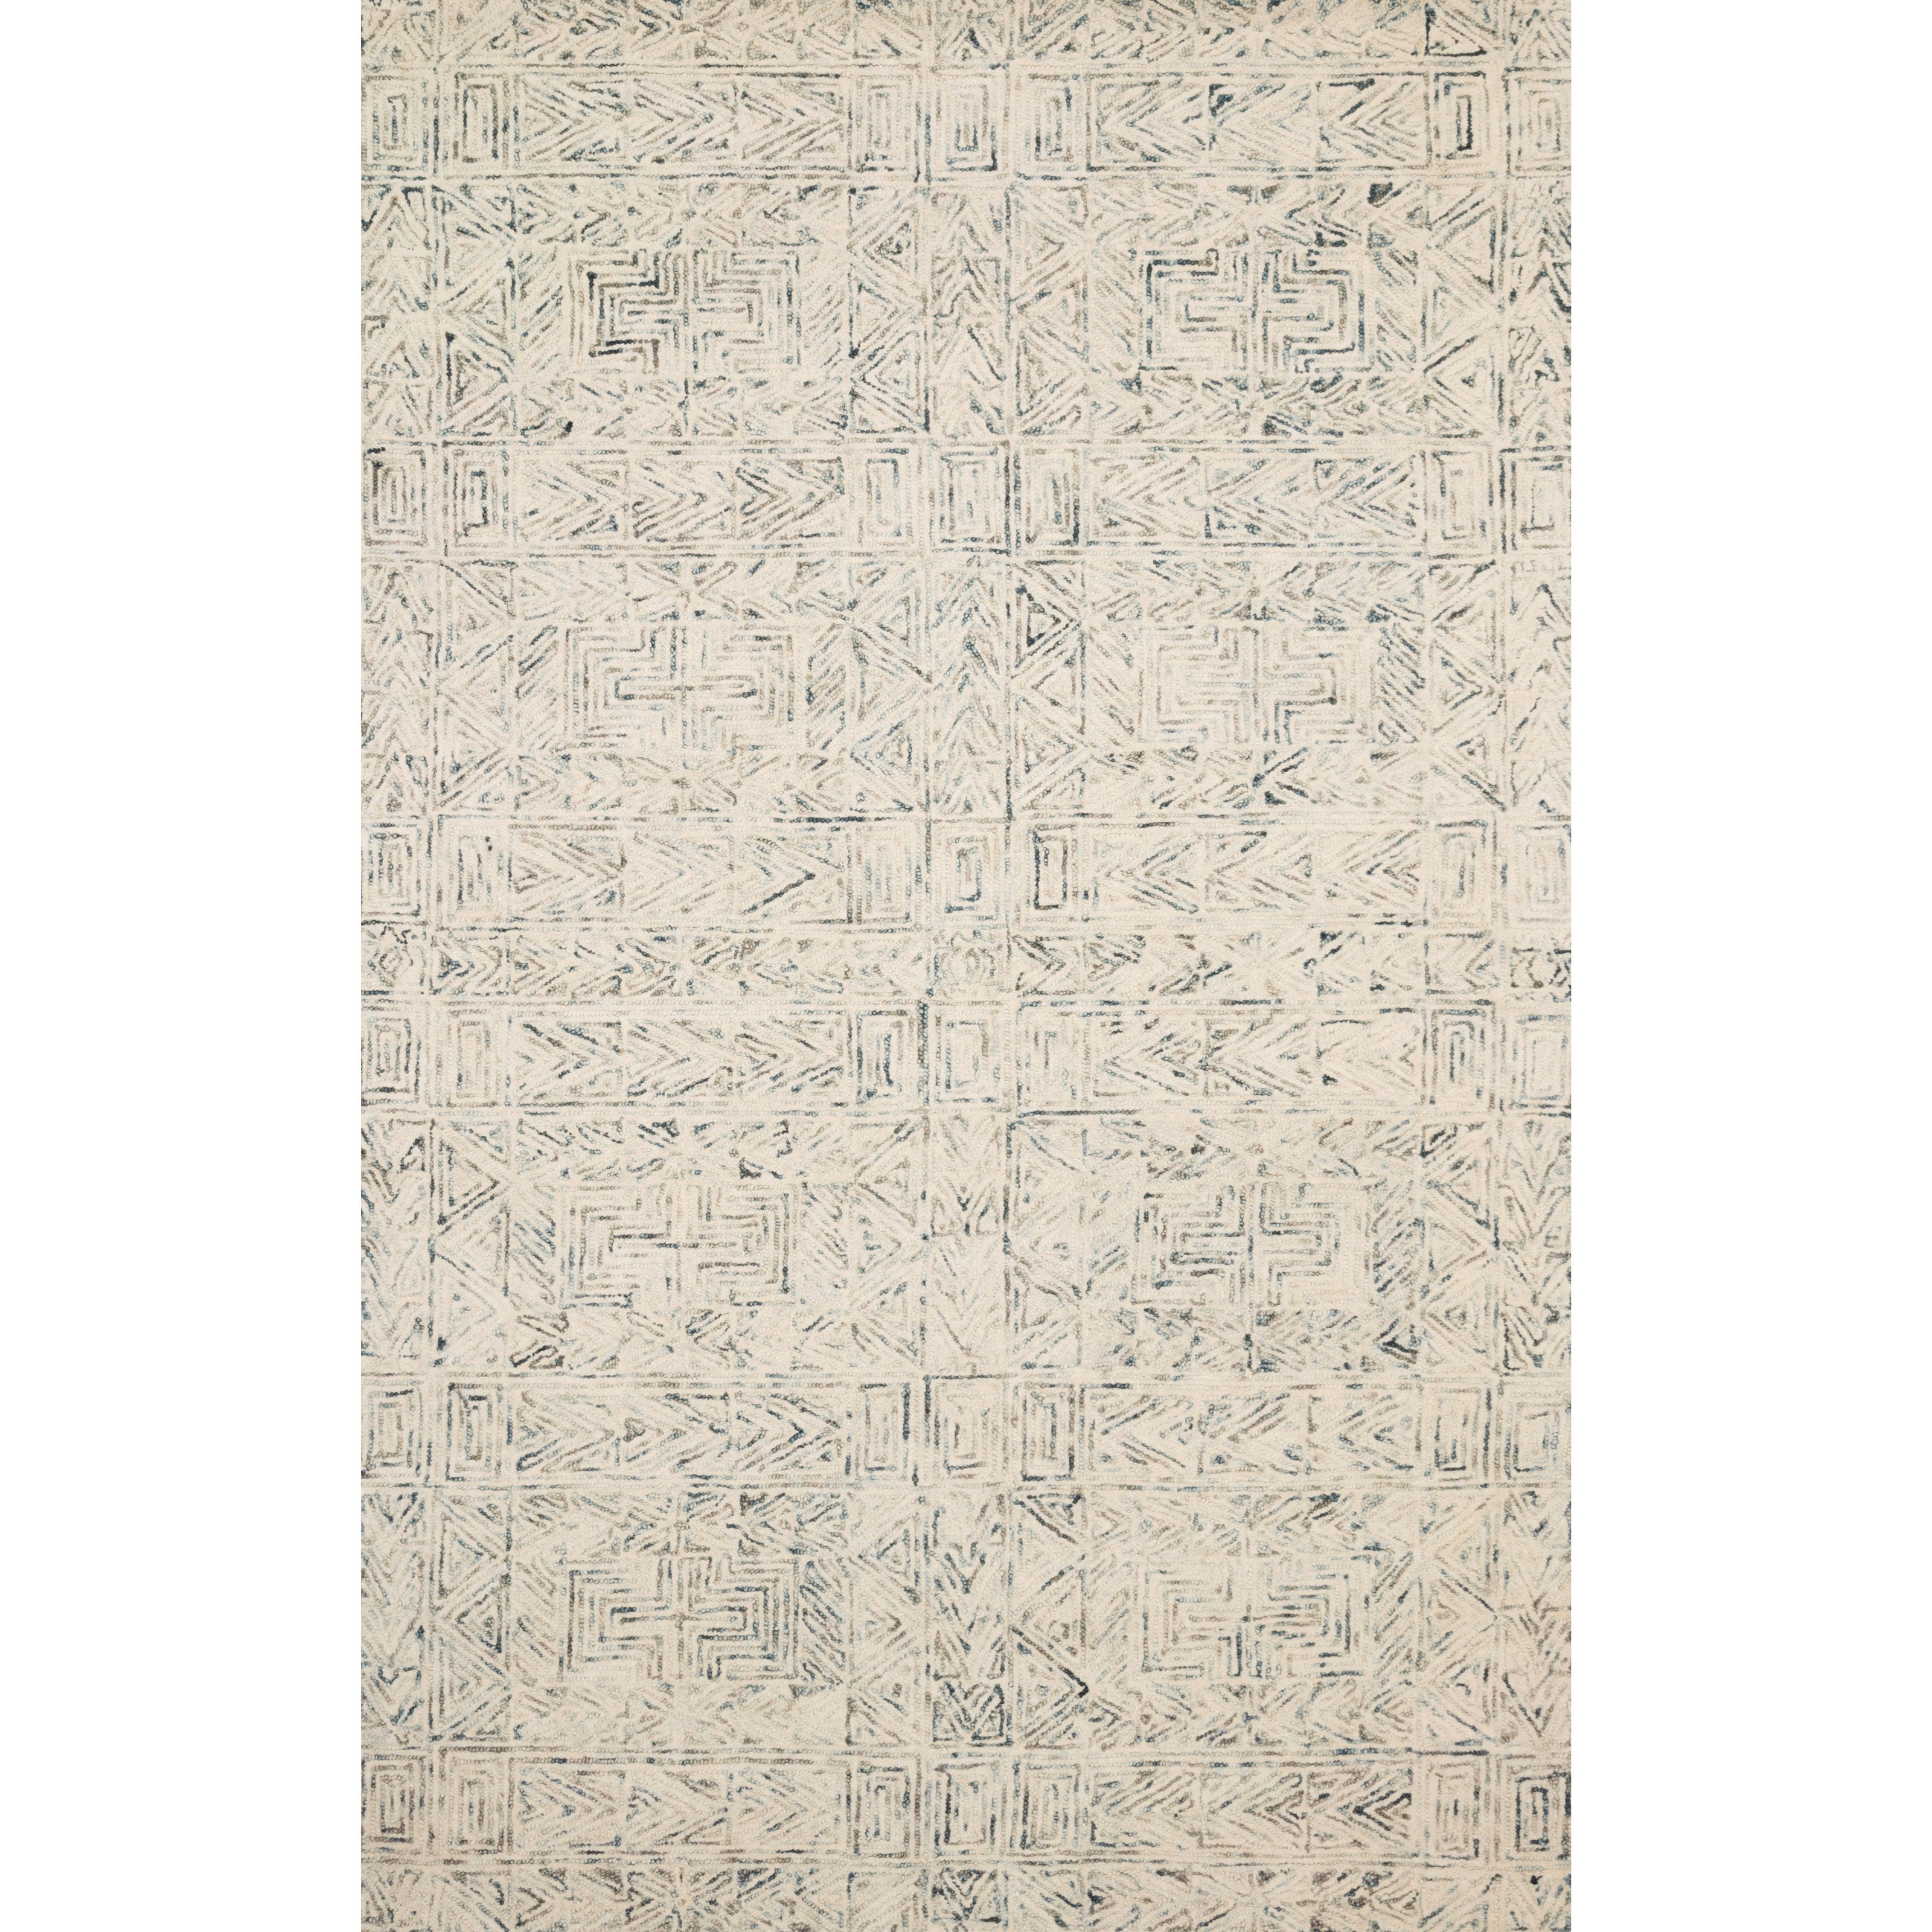 """Peregrine 1'6"""" x 1'6""""  Lt. Blue Rug by Loloi Rugs at Virginia Furniture Market"""